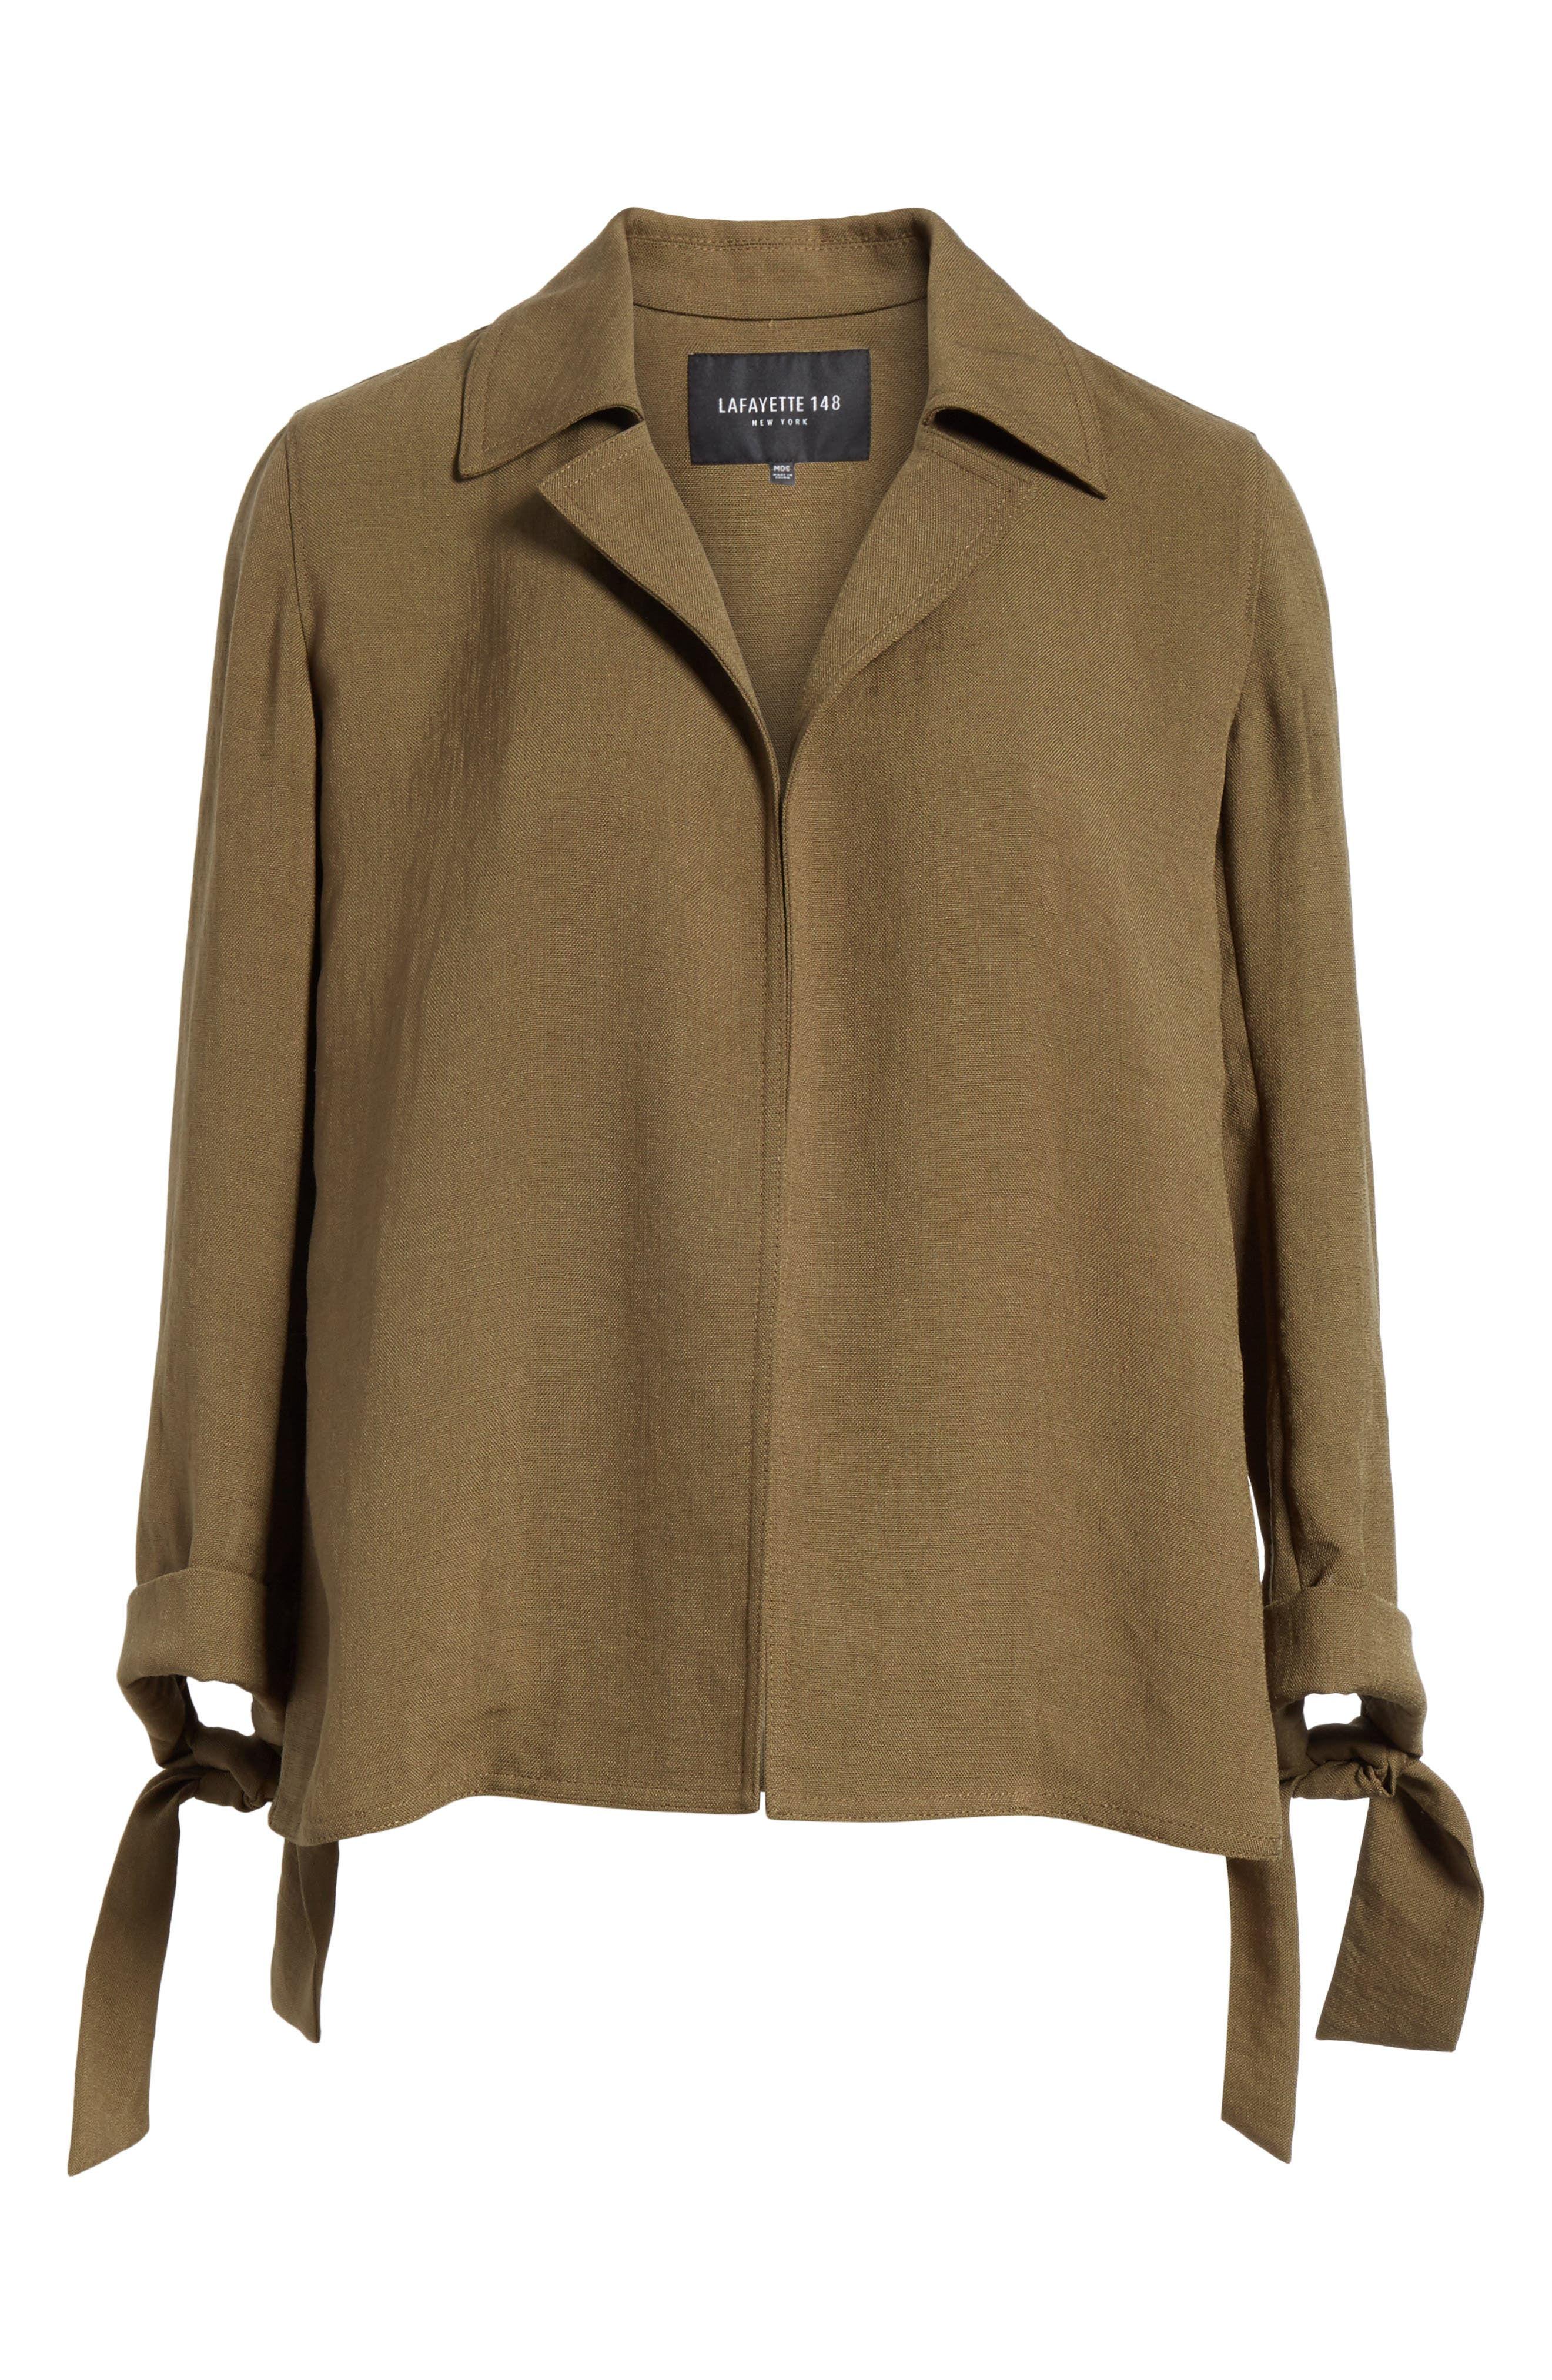 Grant Altruistic Cloth Jacket,                             Alternate thumbnail 6, color,                             Sequoia